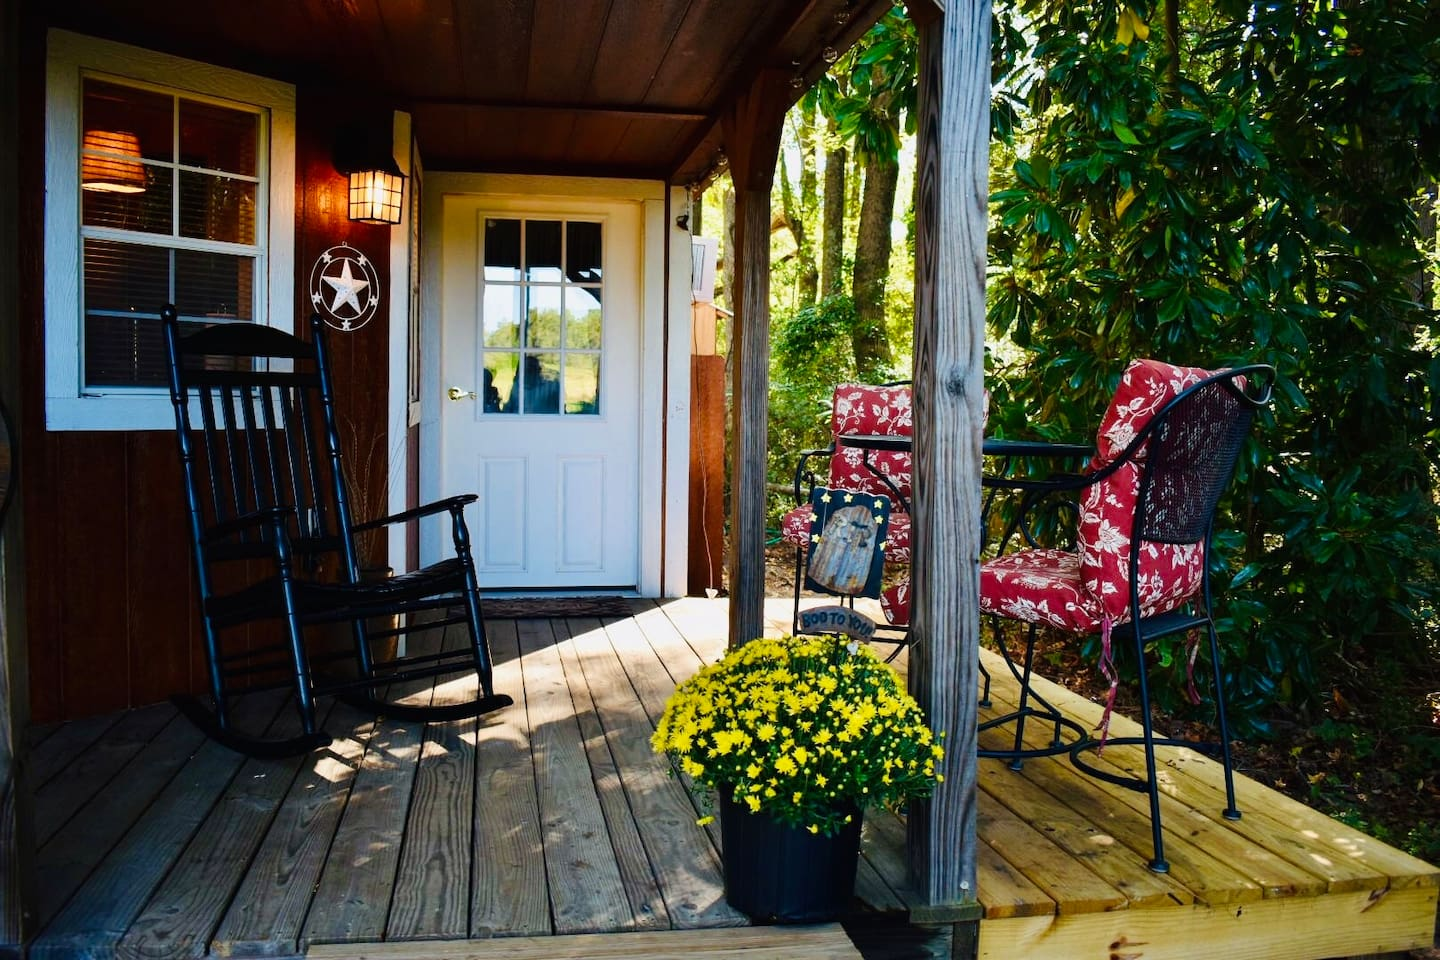 Relax and unwind on this amazing porch in a nice safe wooded town location. Gas grill on deck